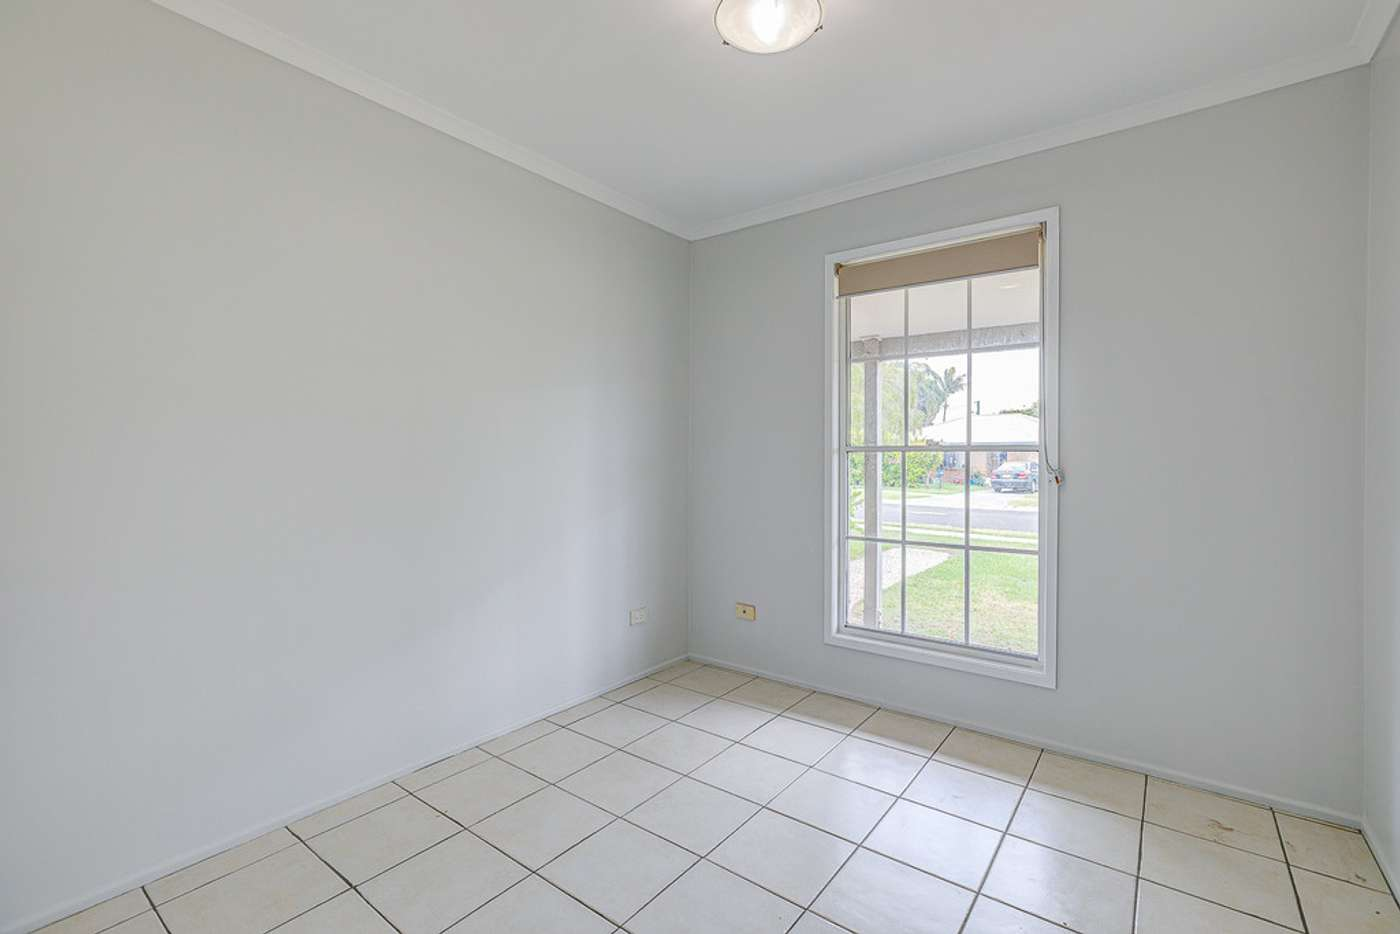 Seventh view of Homely house listing, 33 Kilby Street, Crestmead QLD 4132